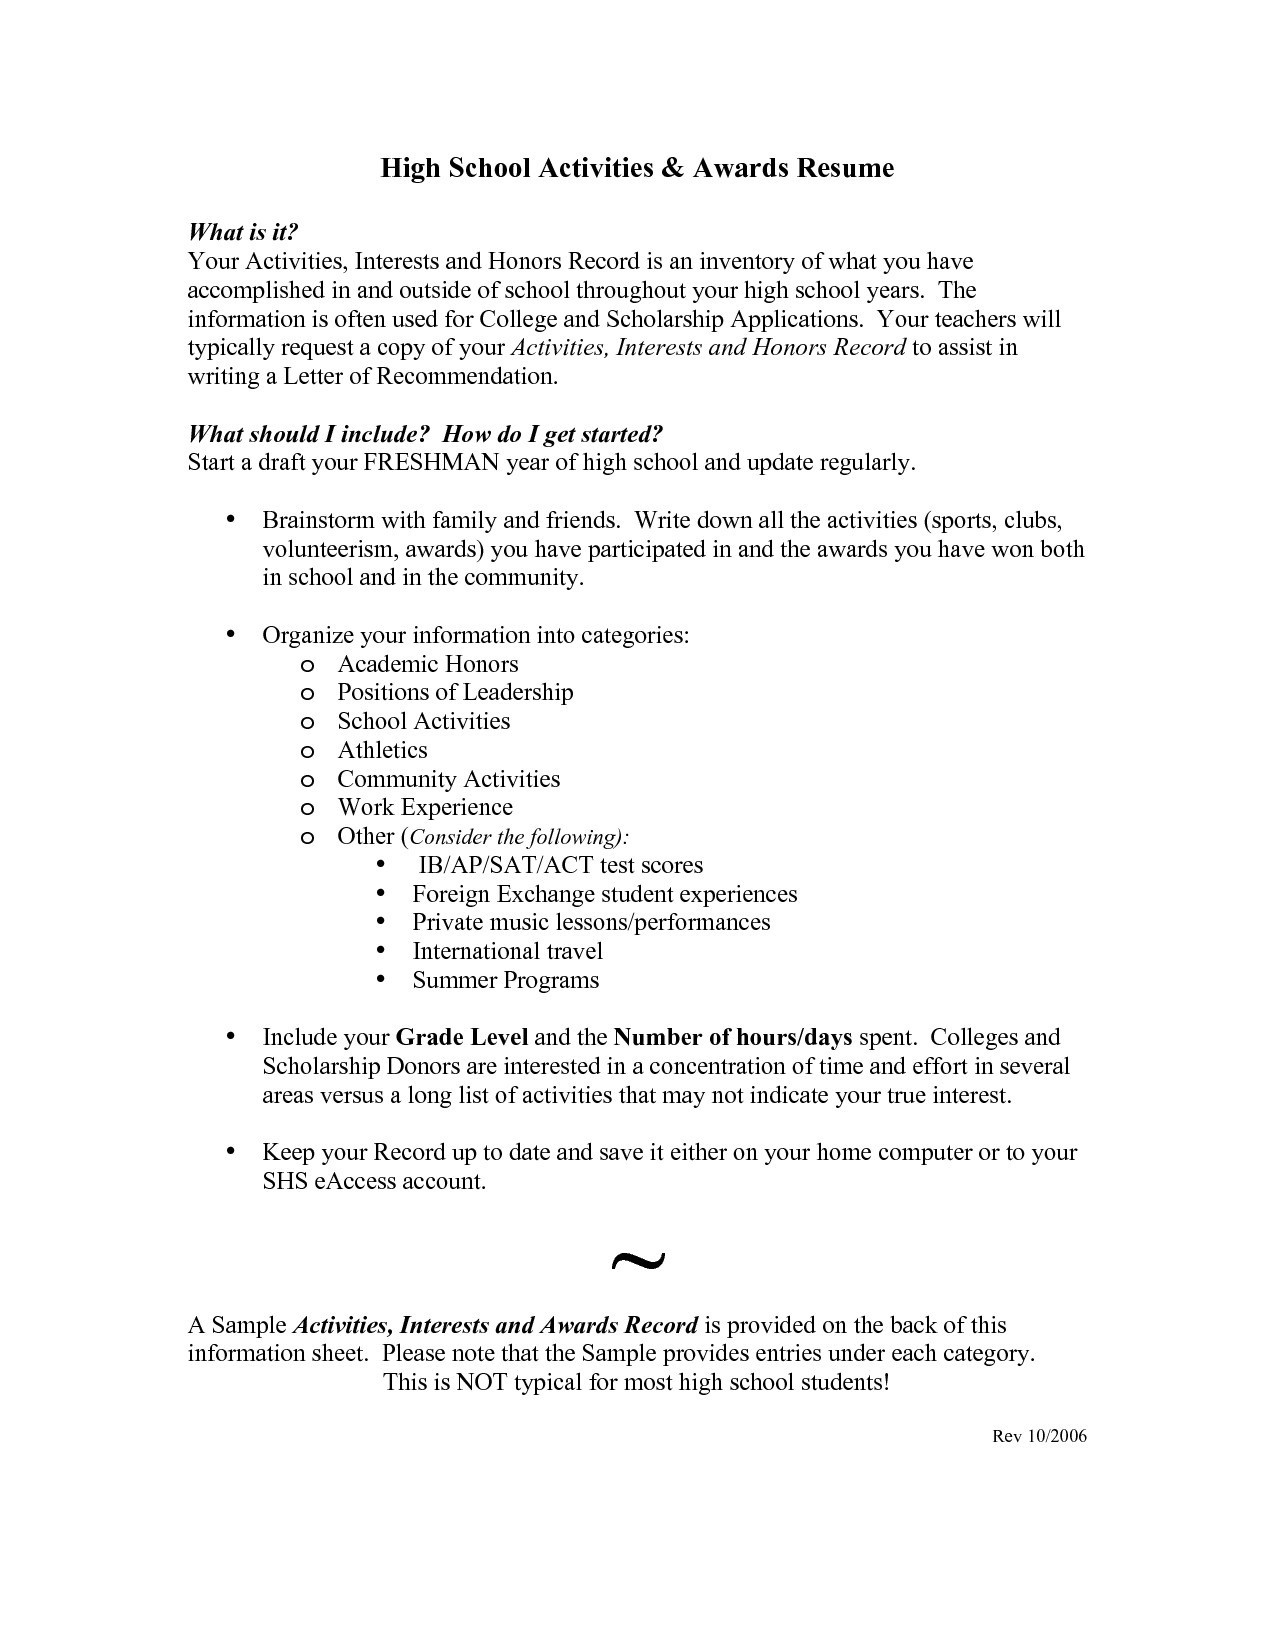 College athlete Resume Template - Resume Templates for Highschool Students Lovely High School Resumes